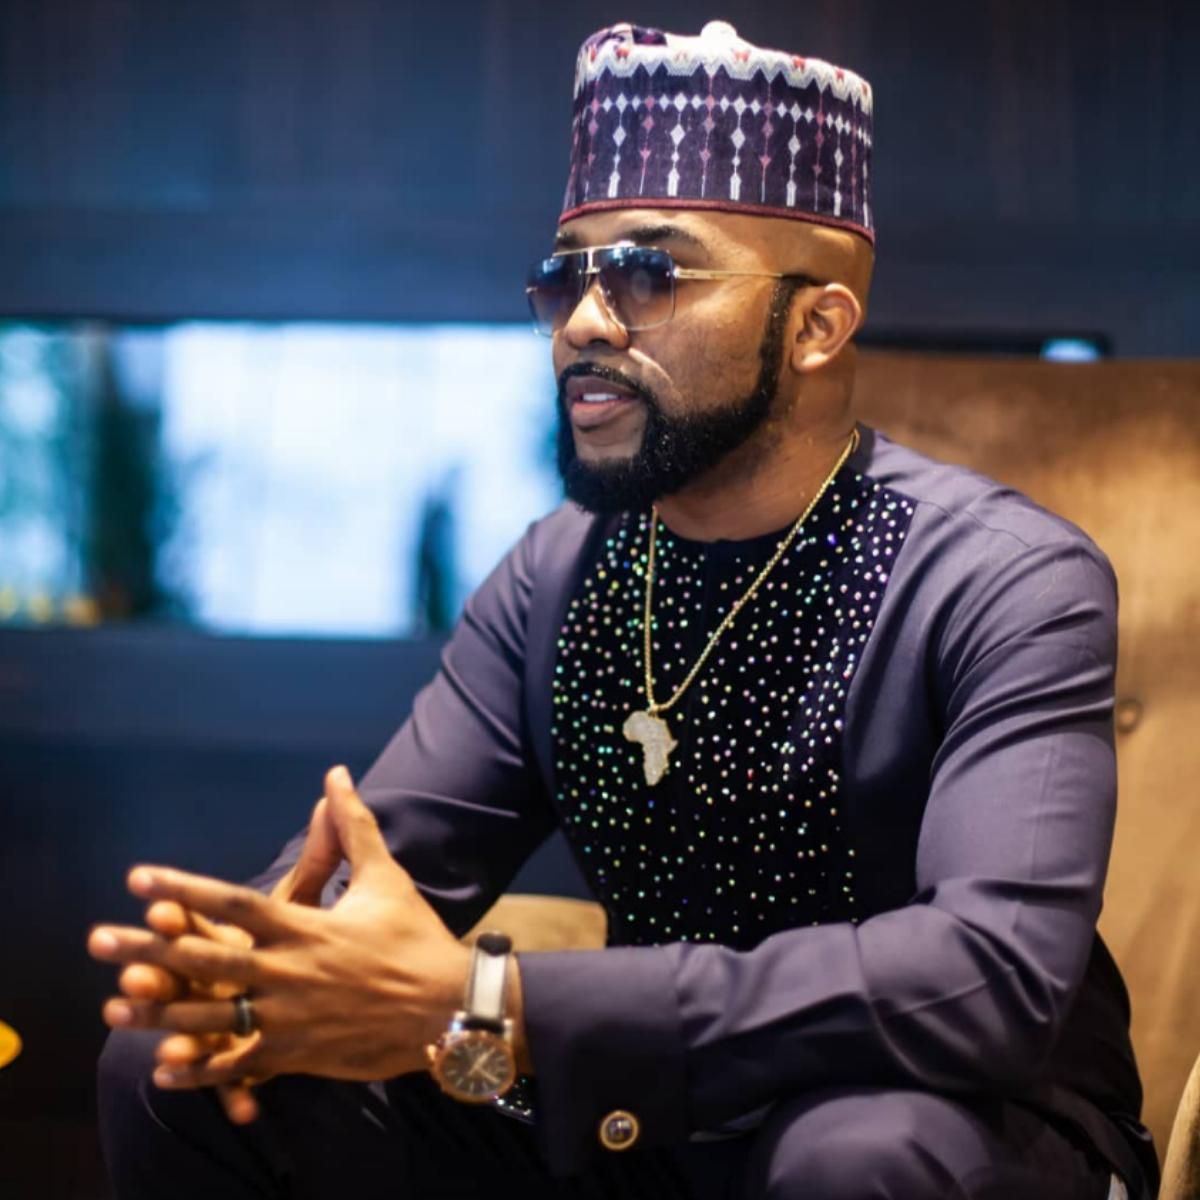 Banky W Warns Against Violence As South Africa Xenophobic Attacks